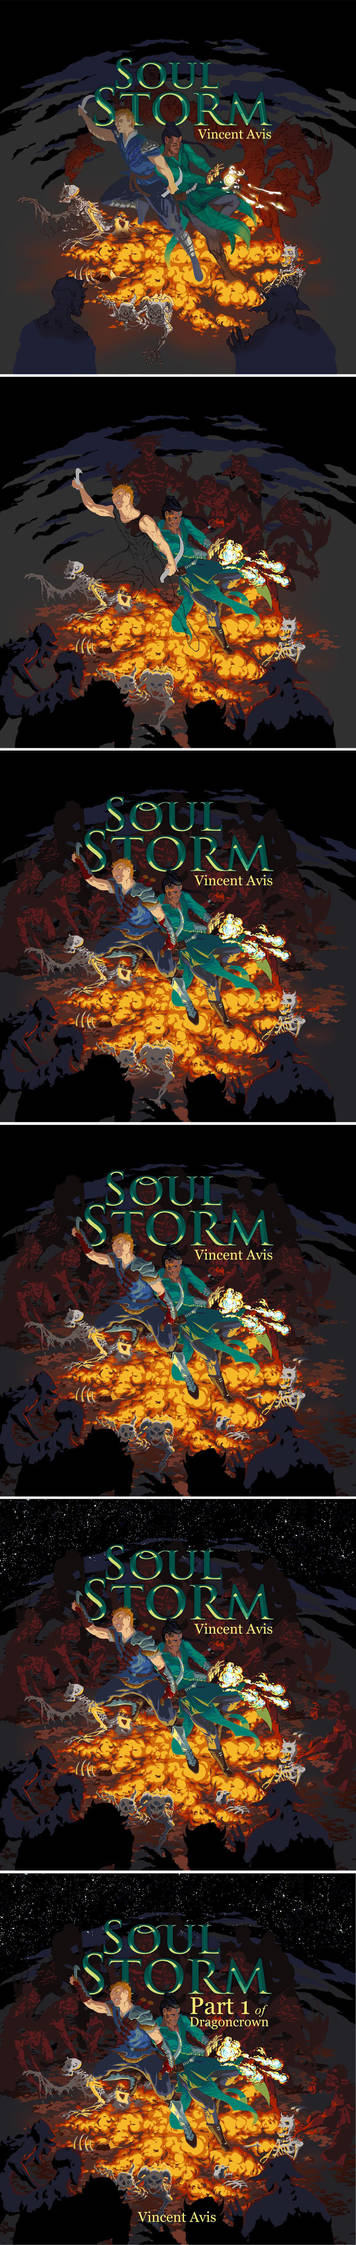 Soul Storm Cover Art step by step by Remietc